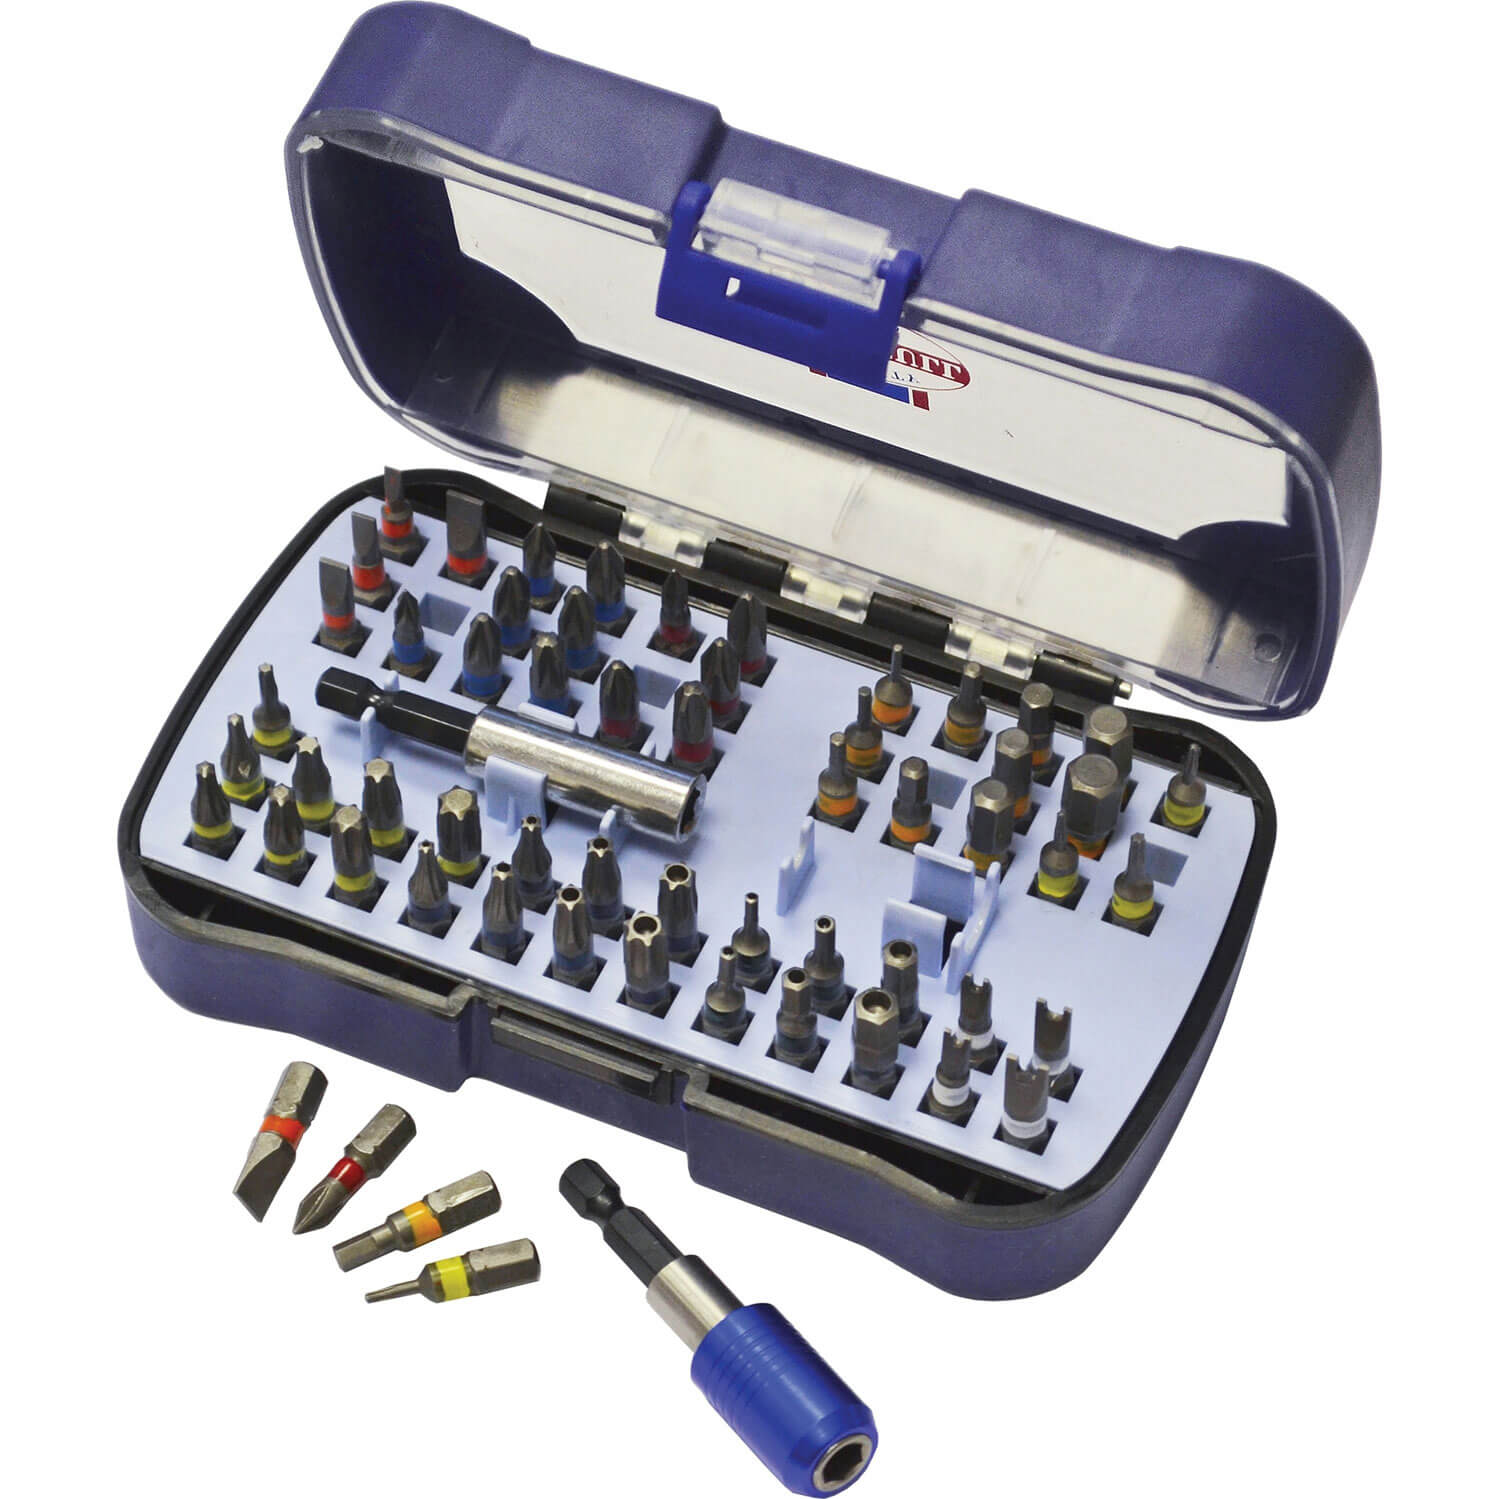 Image of Faithfull 60 Piece Security Screwdriver Bit Set